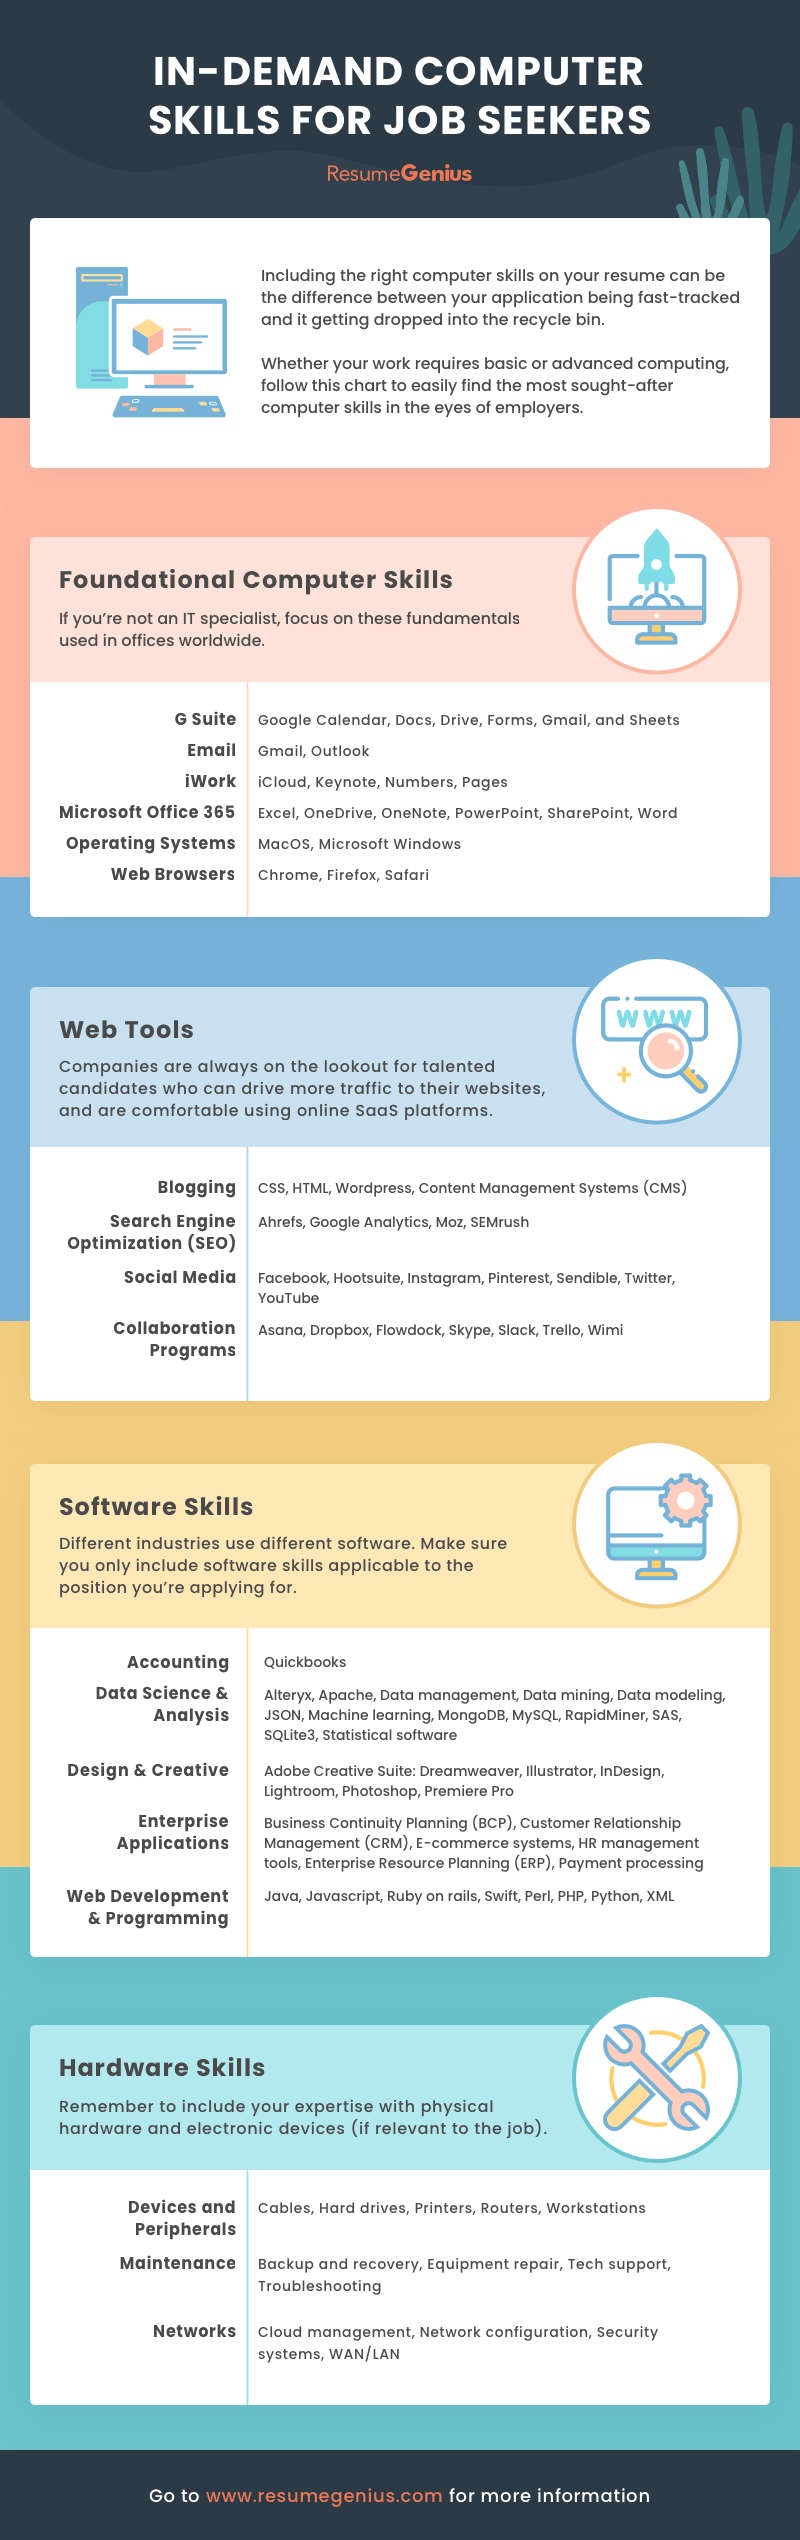 Infographic showing various computer skills for resumes